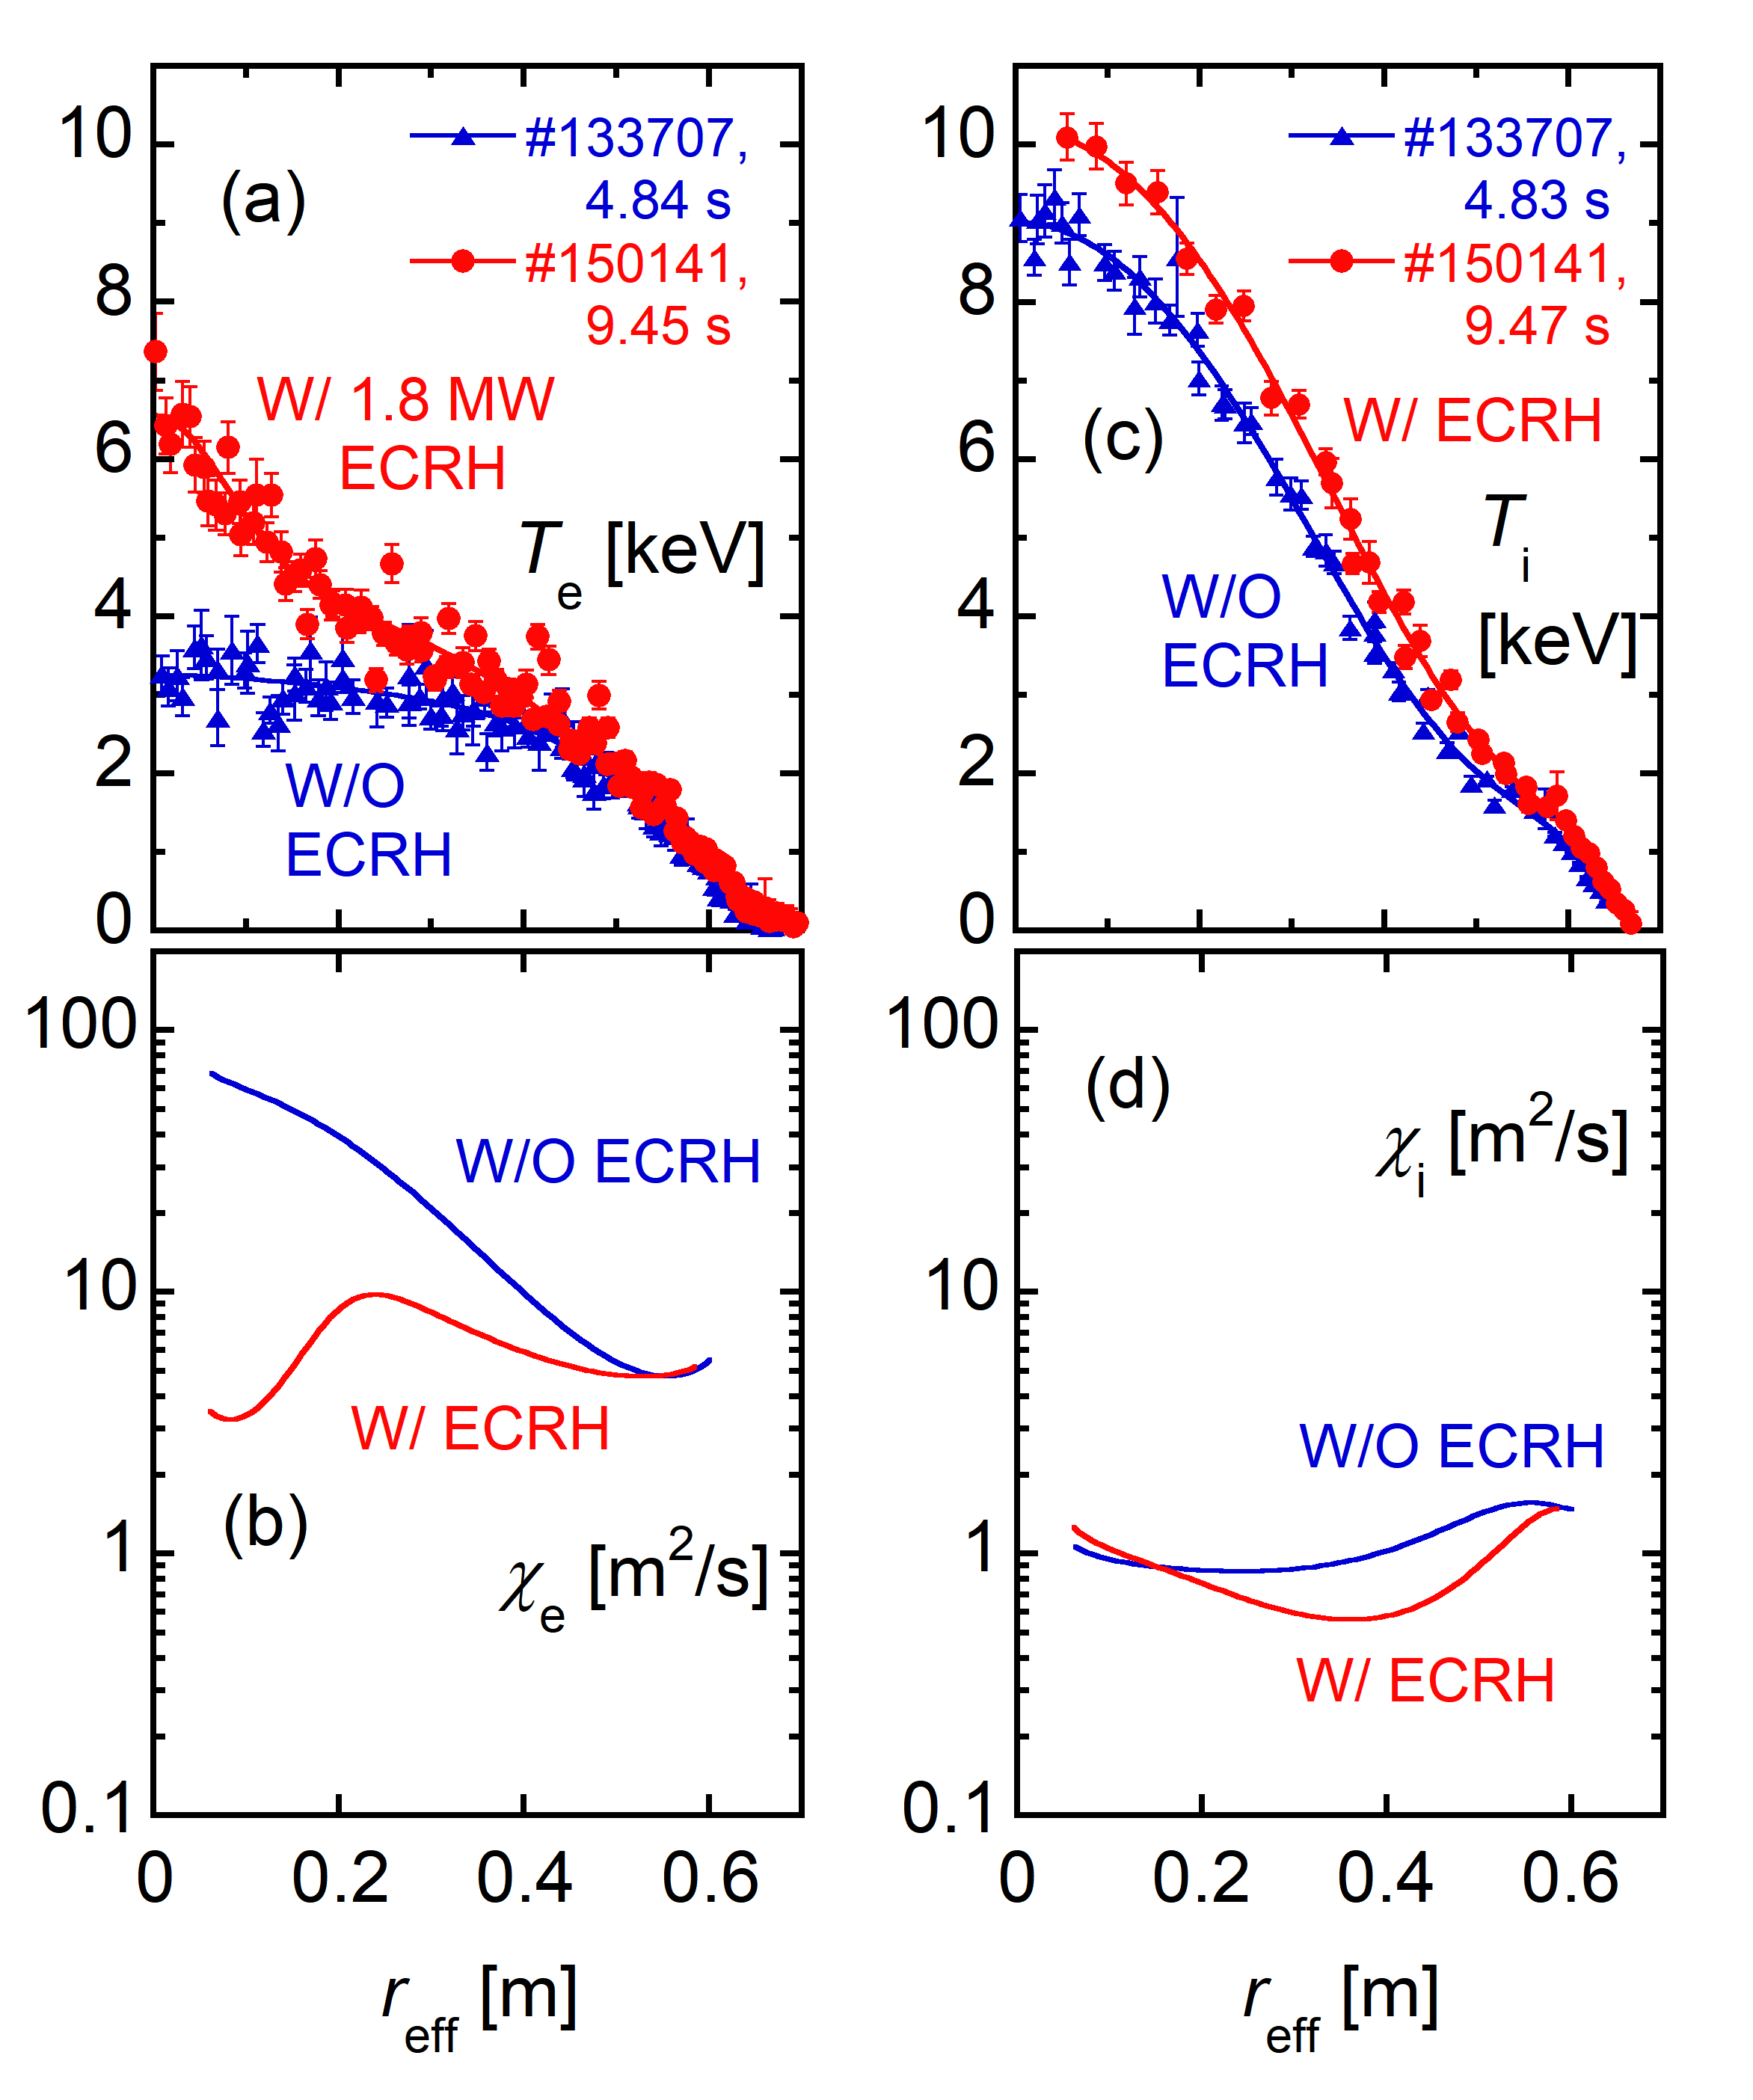 The radial profiles of (a) $T_e$, (b) $\chi$$_e$, (c) $T_i$, and (d) $\chi$$_i$ without and with 1.8-MW ECRH.